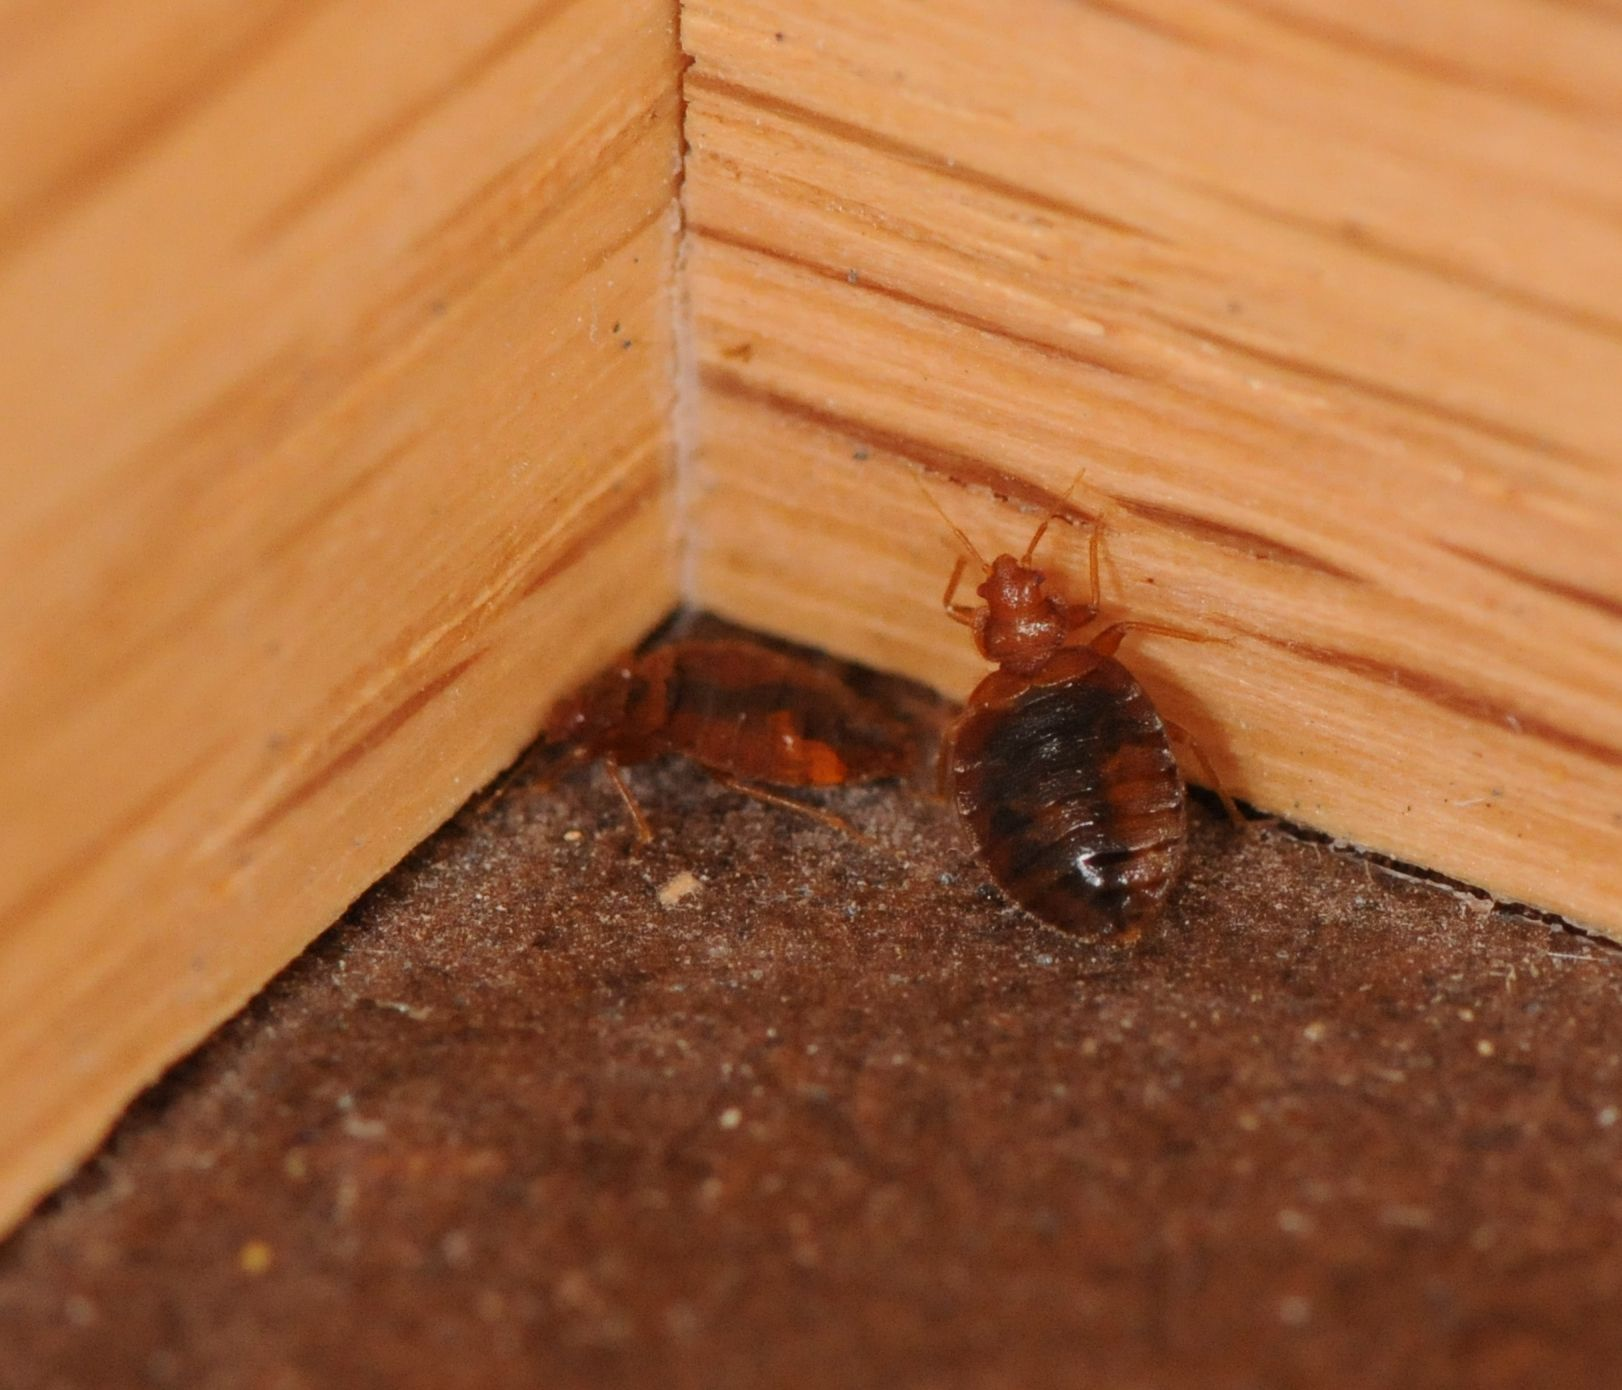 Bed Bugs In Corner Of Room Bed Bugs Bed Bugs Pictures Rug